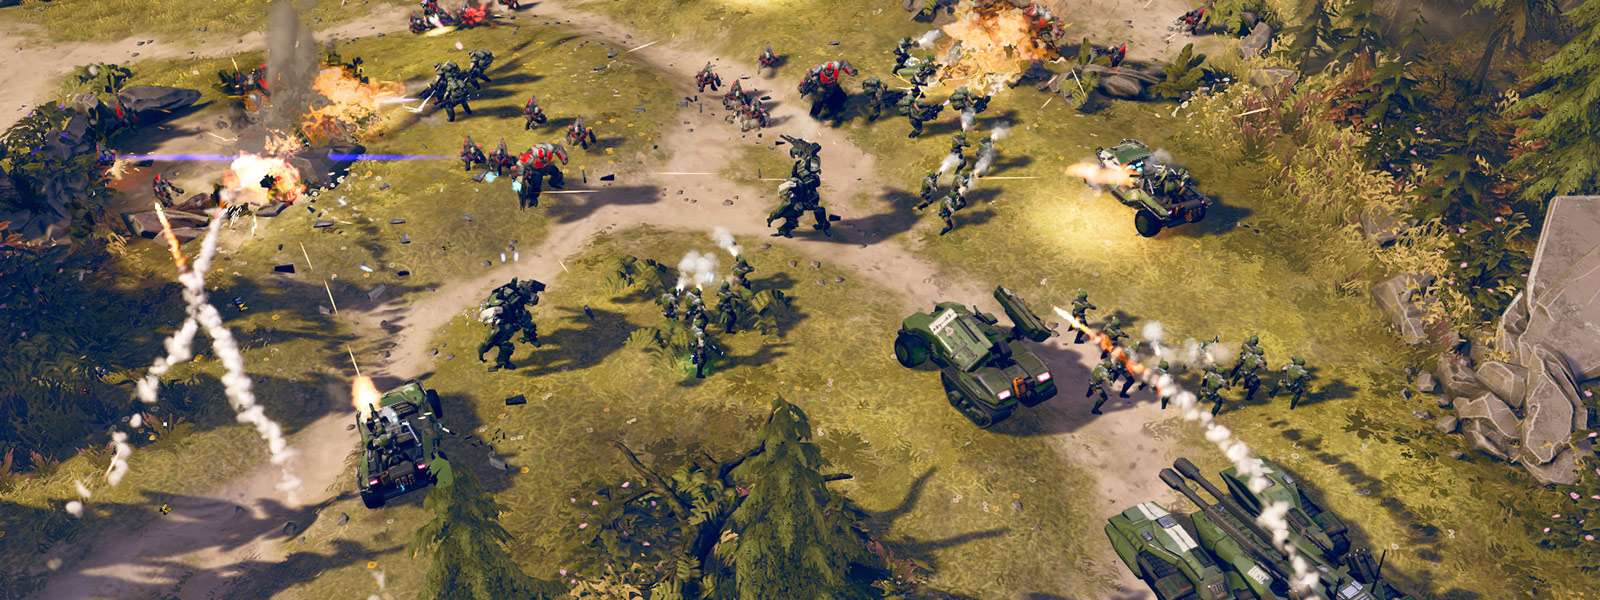 Halo Wars 2 build army